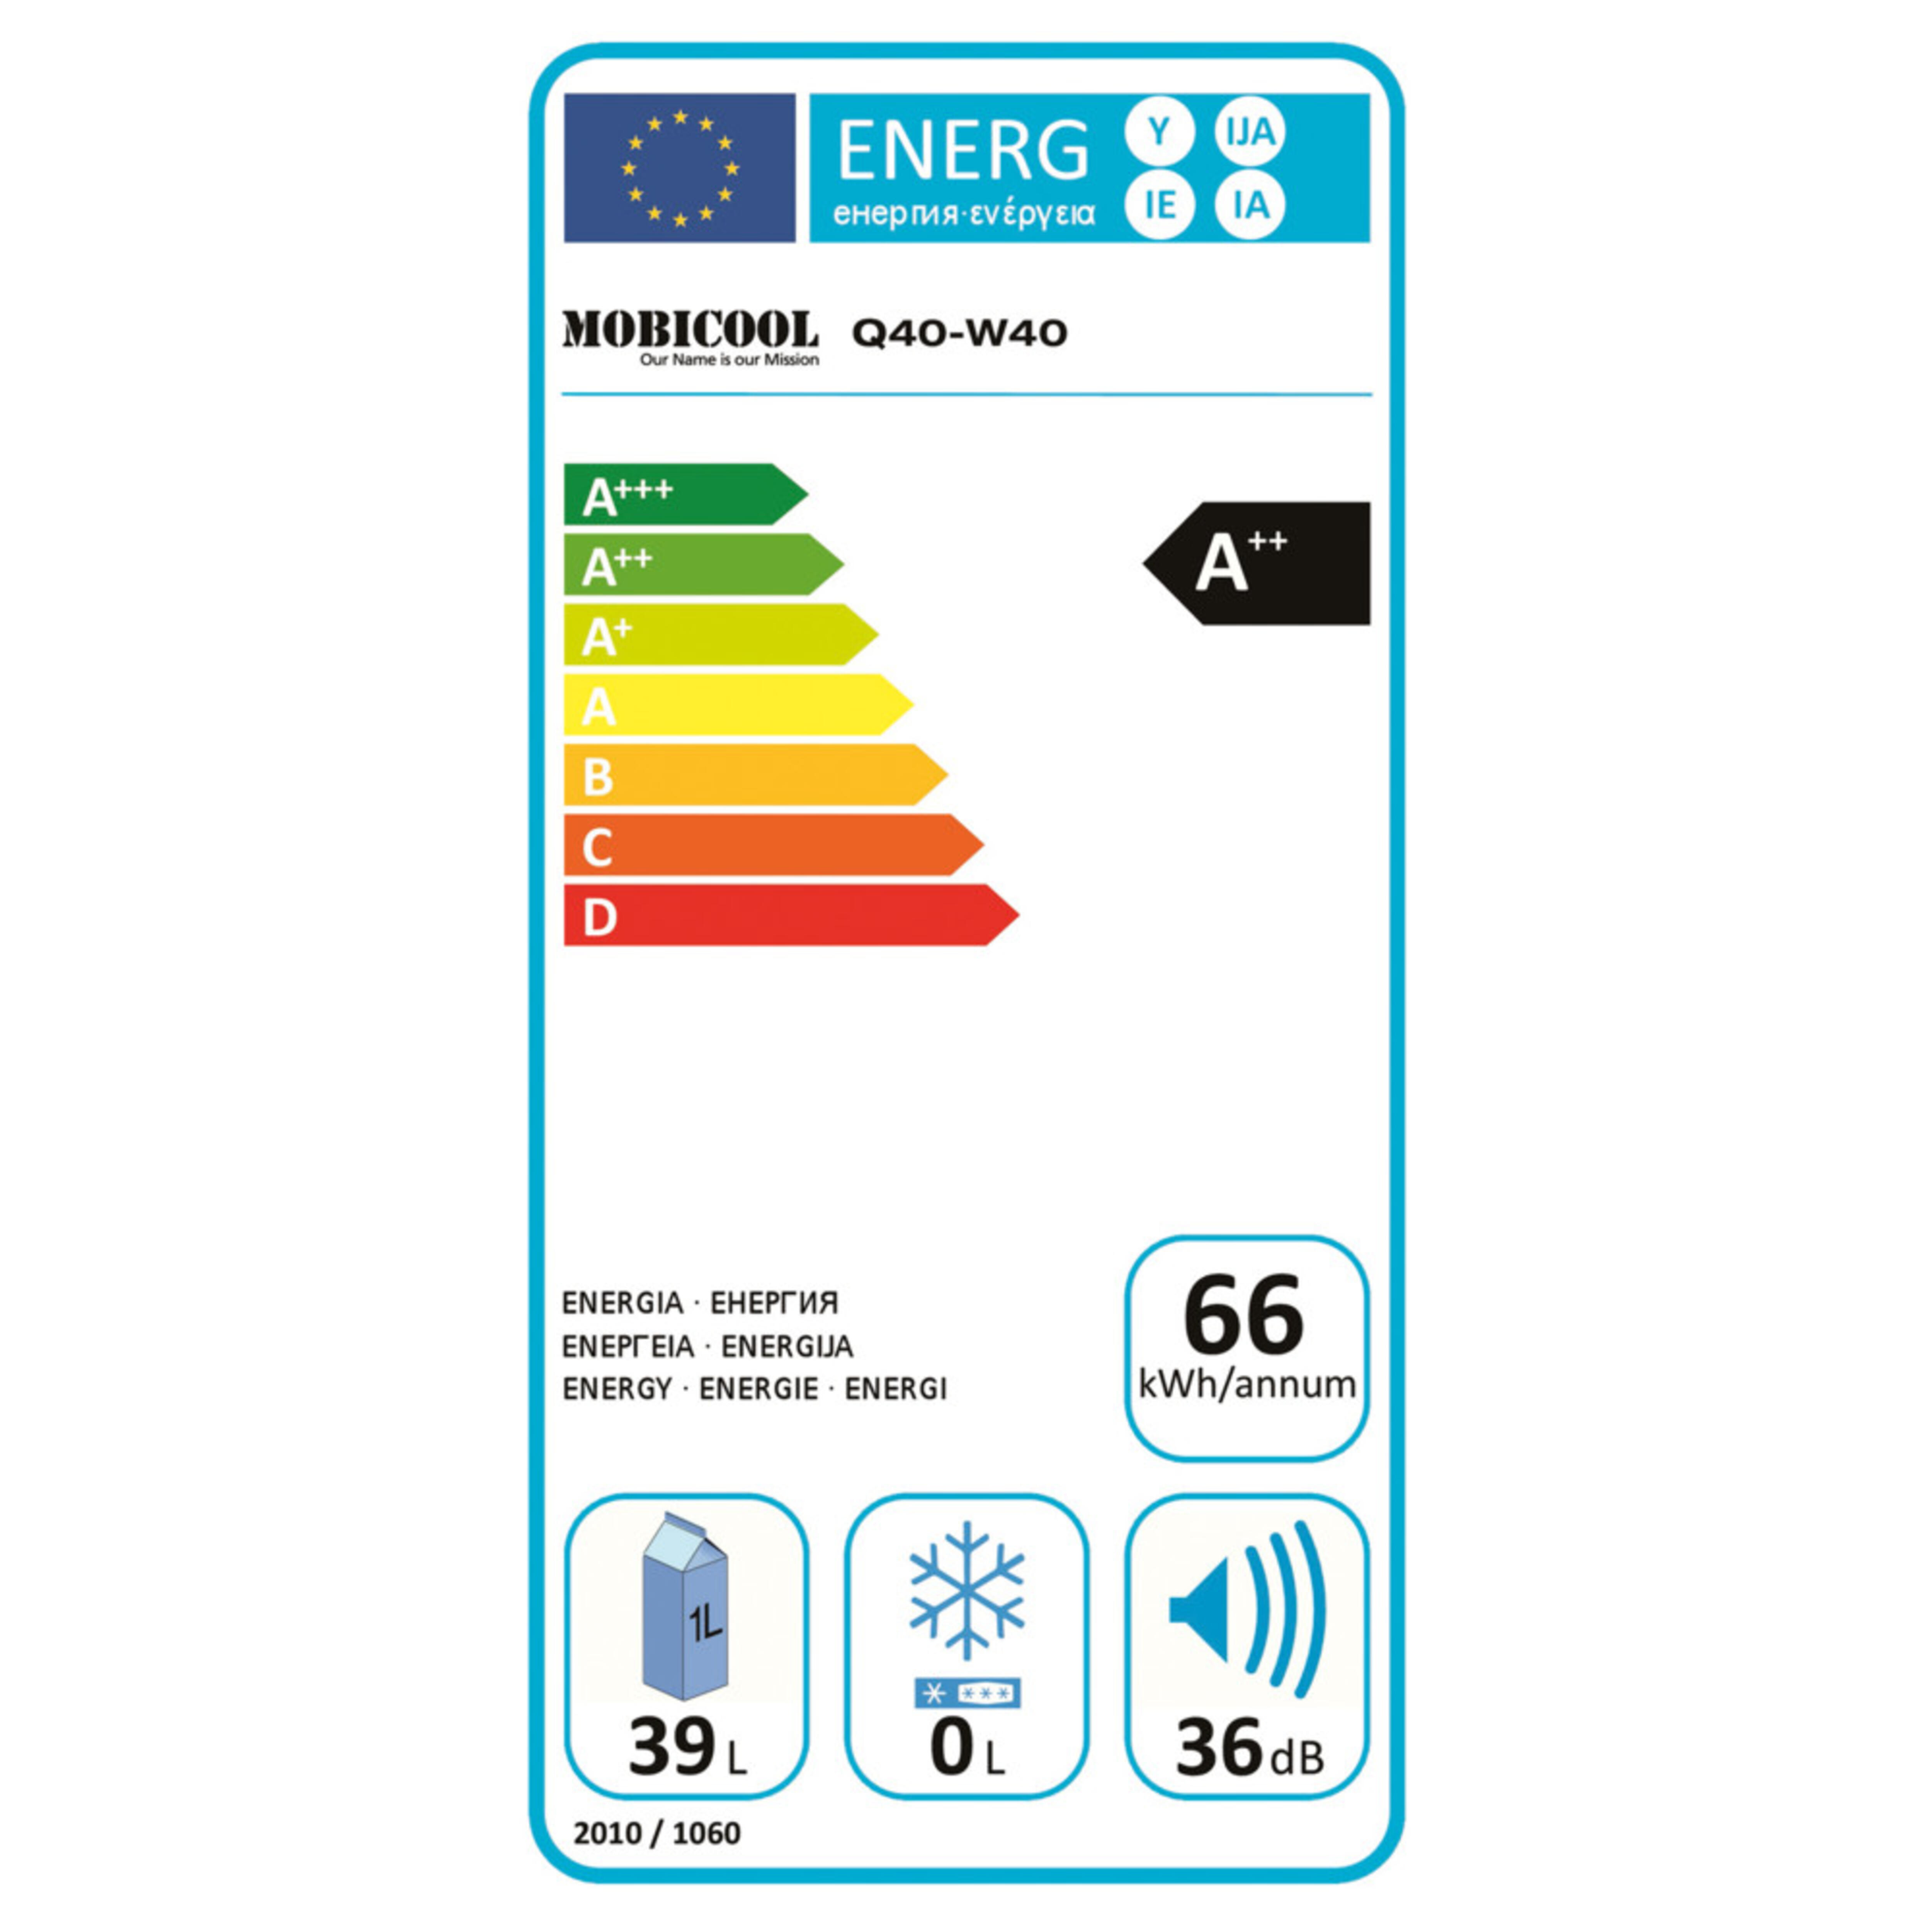 Mobicool W40 Energy label